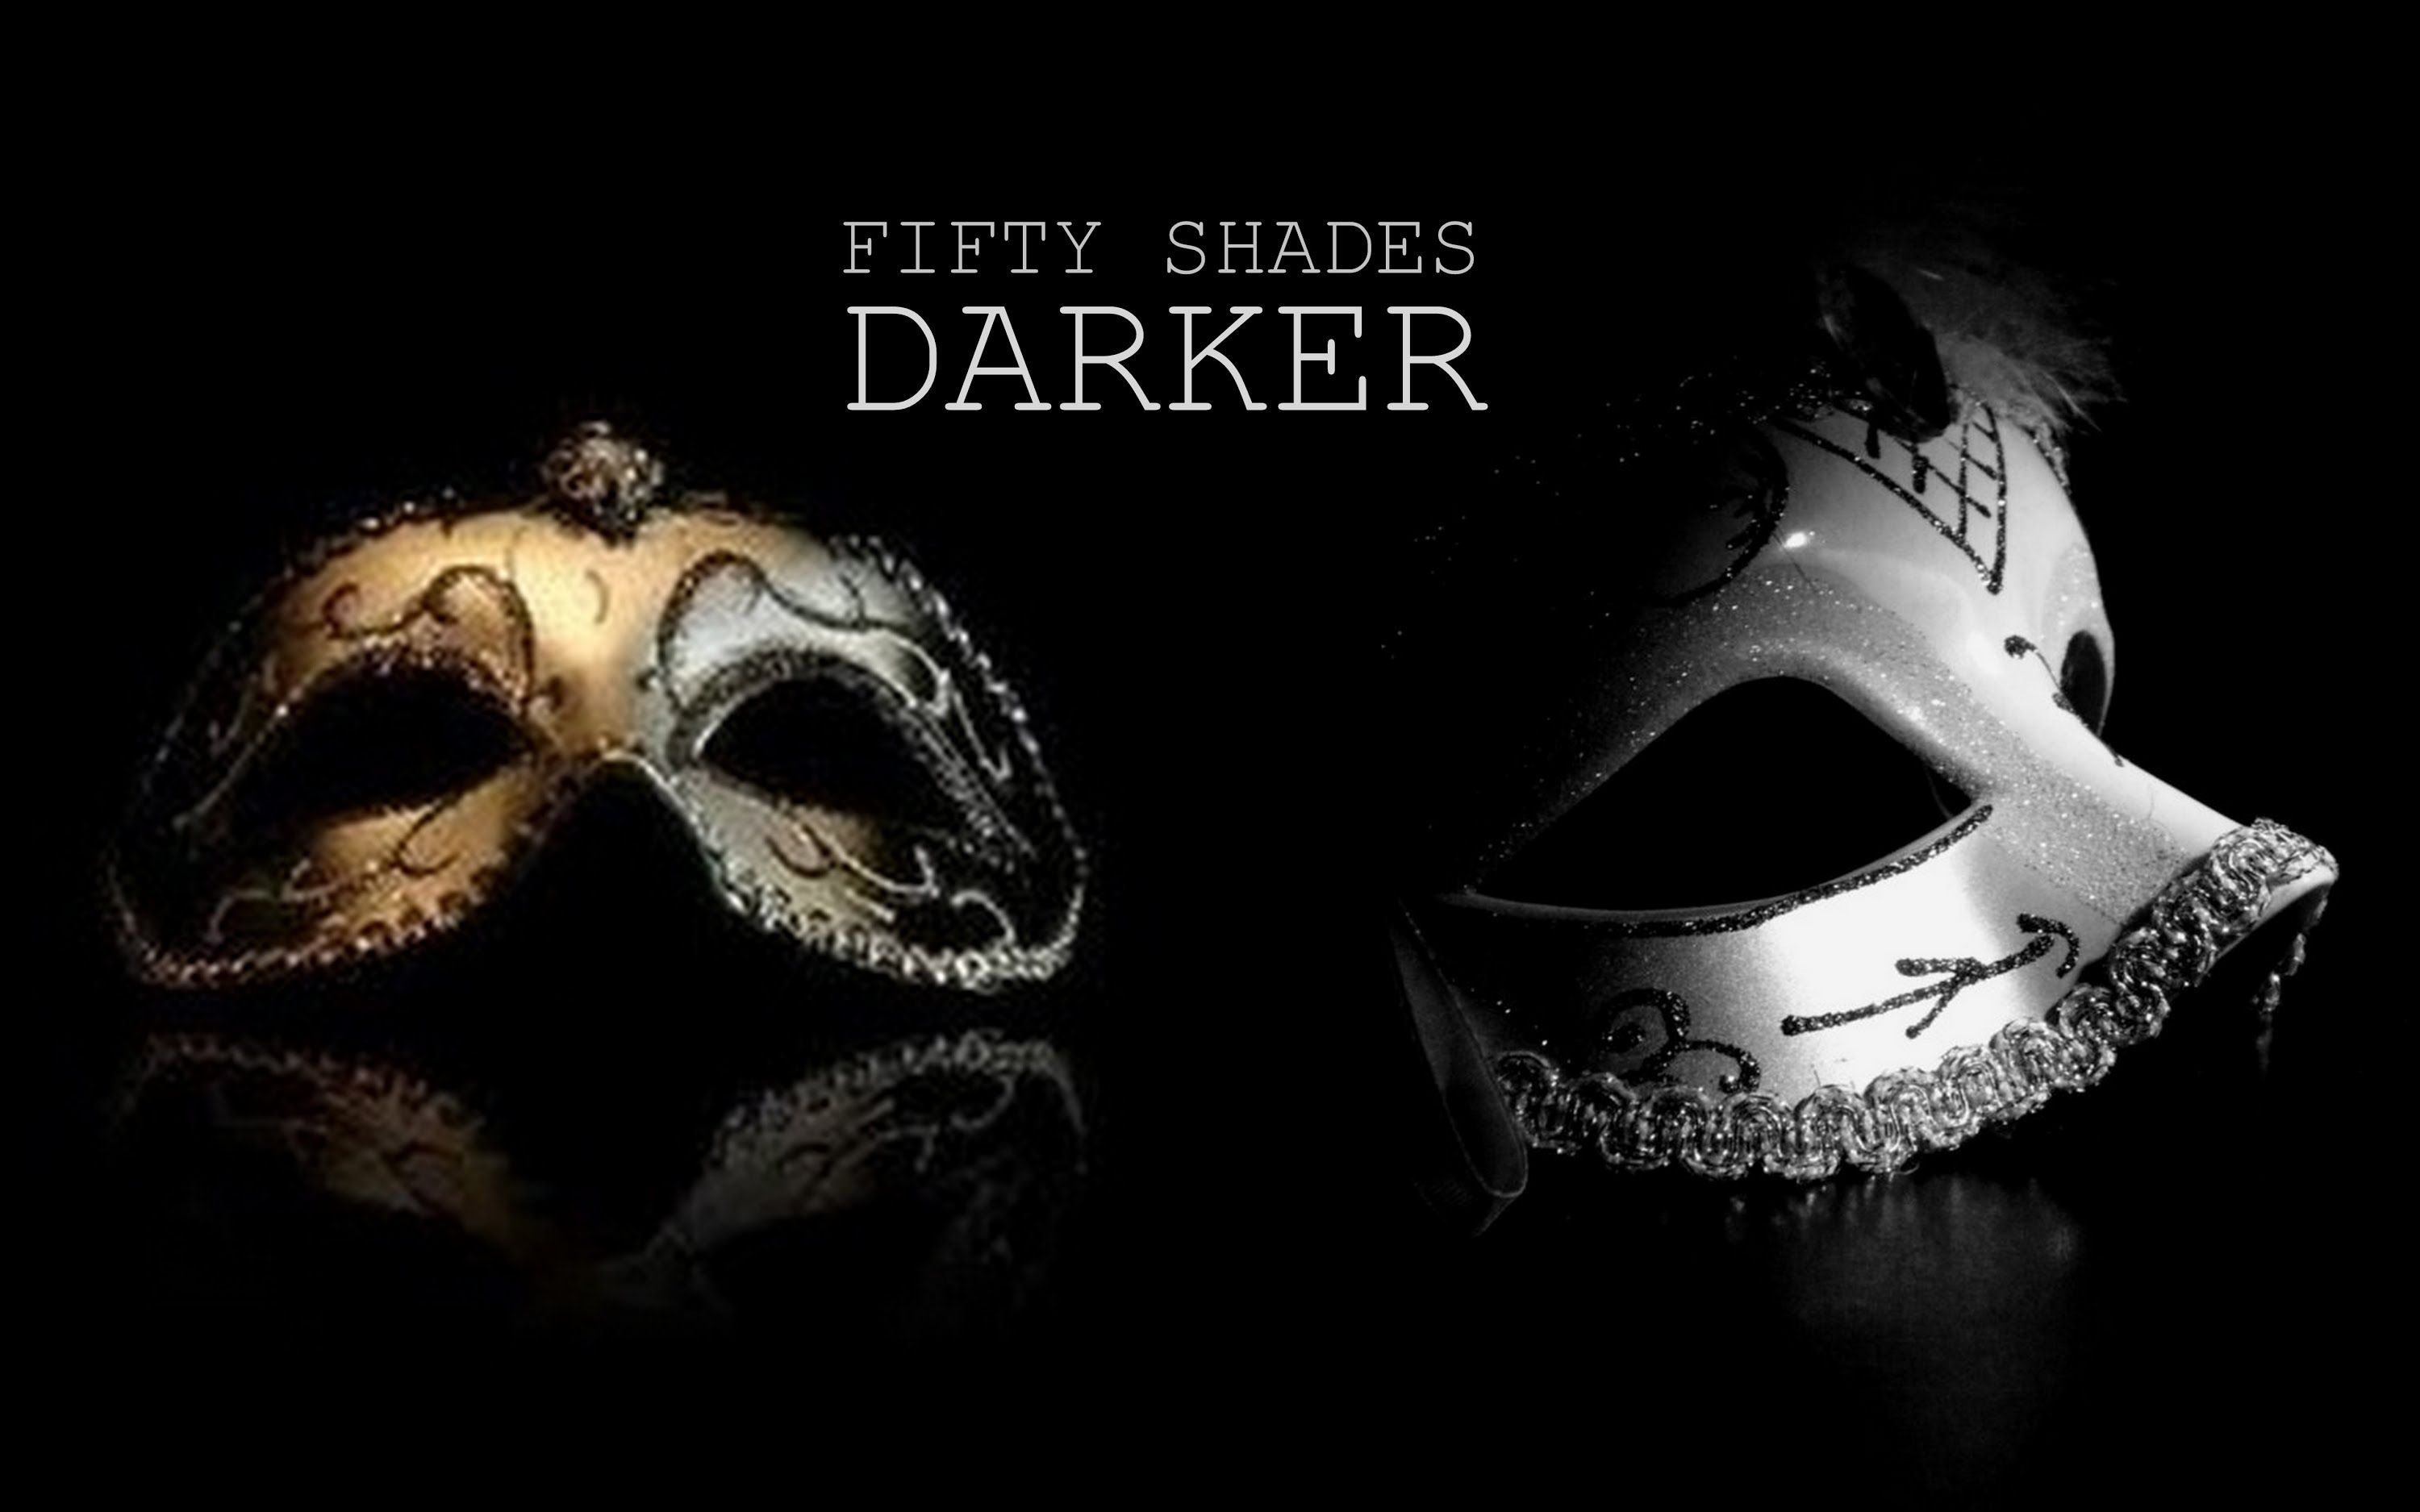 Should Christians Go See Fifty Shades Darker?